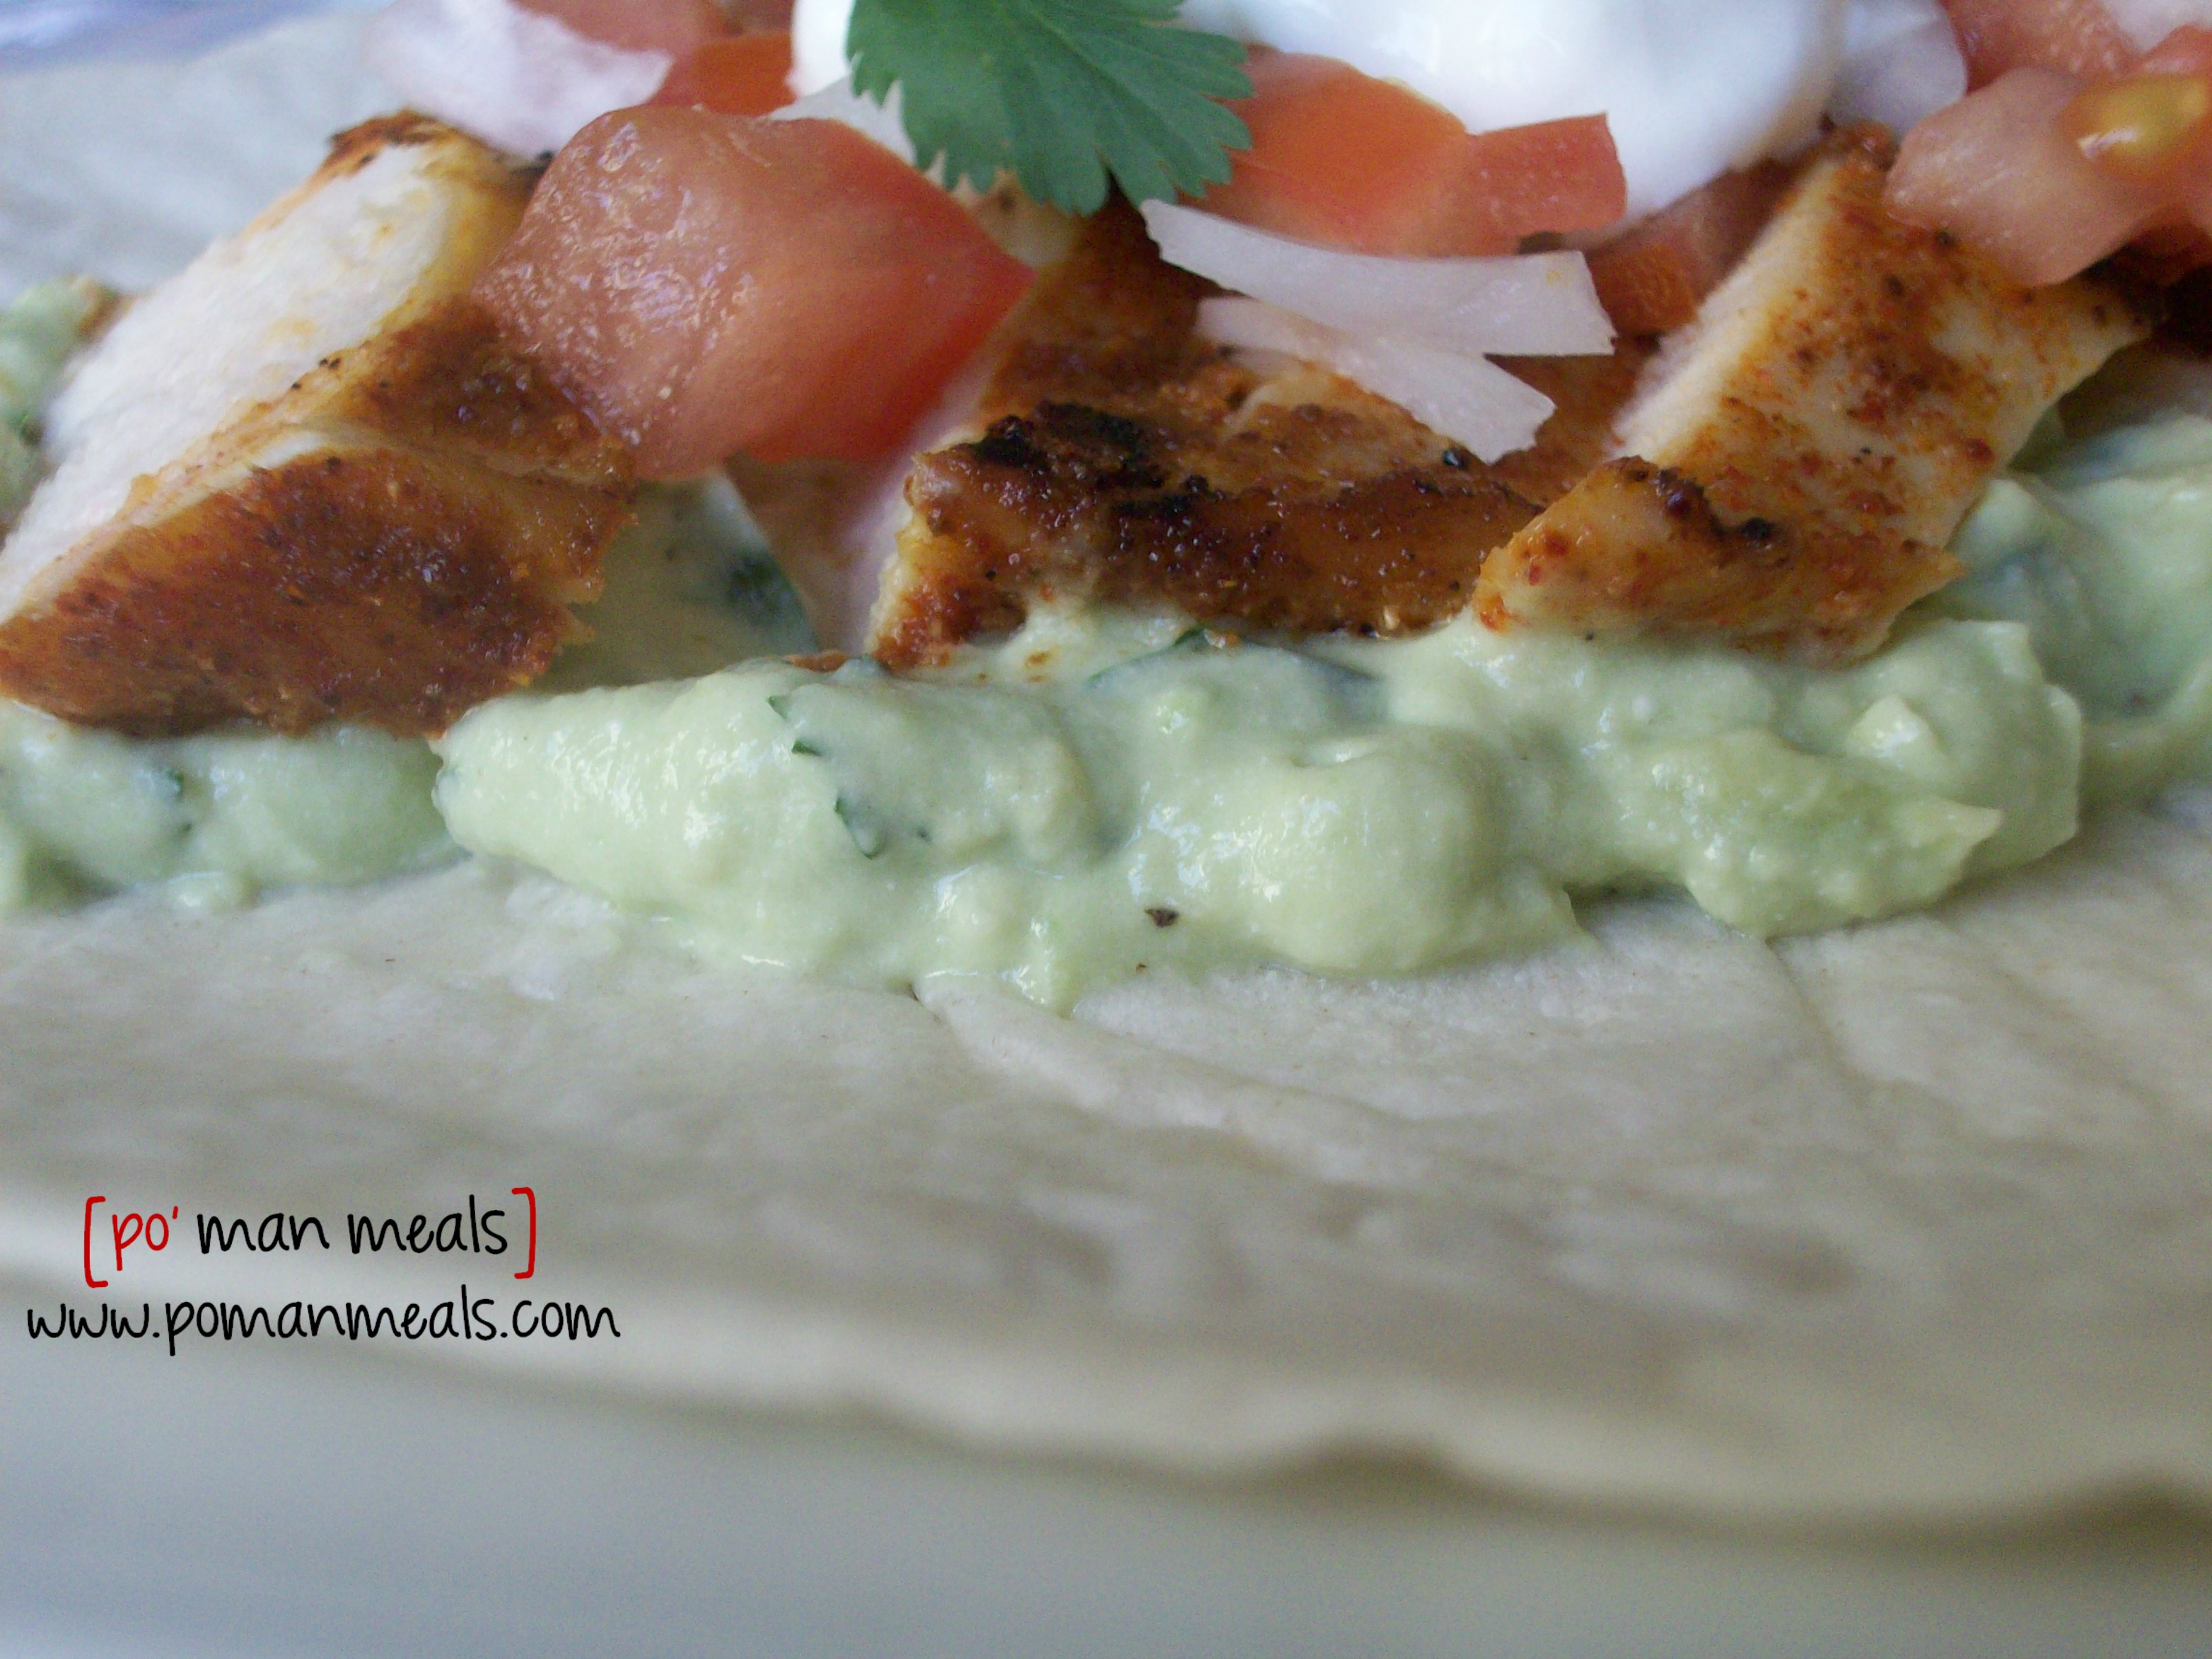 grilled-chicken-soft-tacos-with-avocado-cream3wm